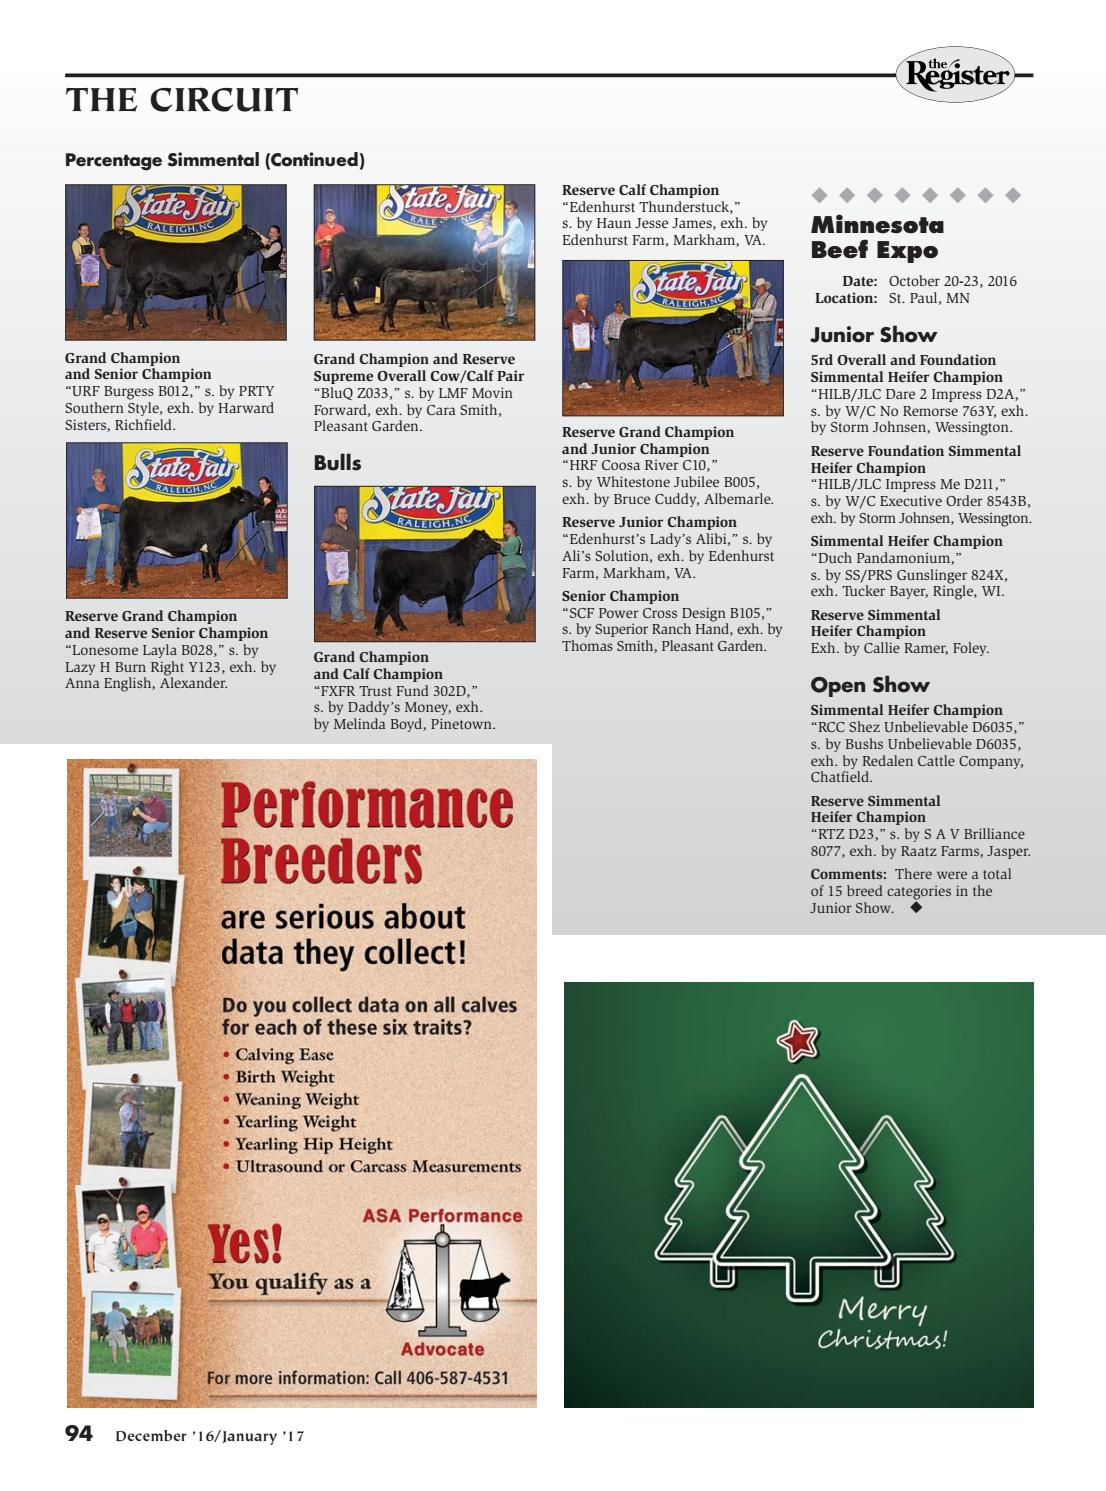 So Pleasant It Is To Have Money Heigh >> The Register December January 2017 By American Simmental